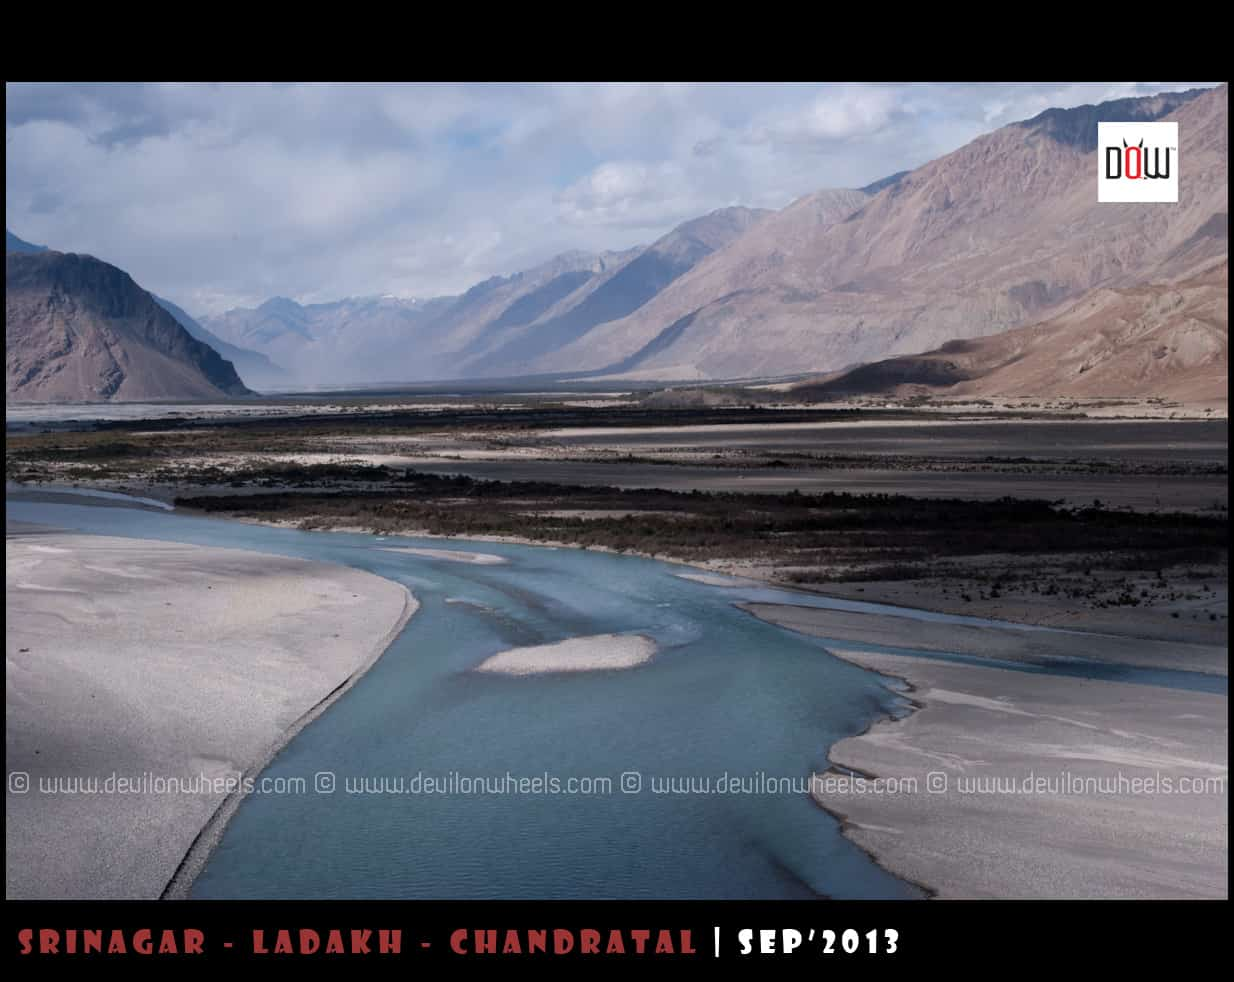 Shyok River and widening views of Nubra Valley